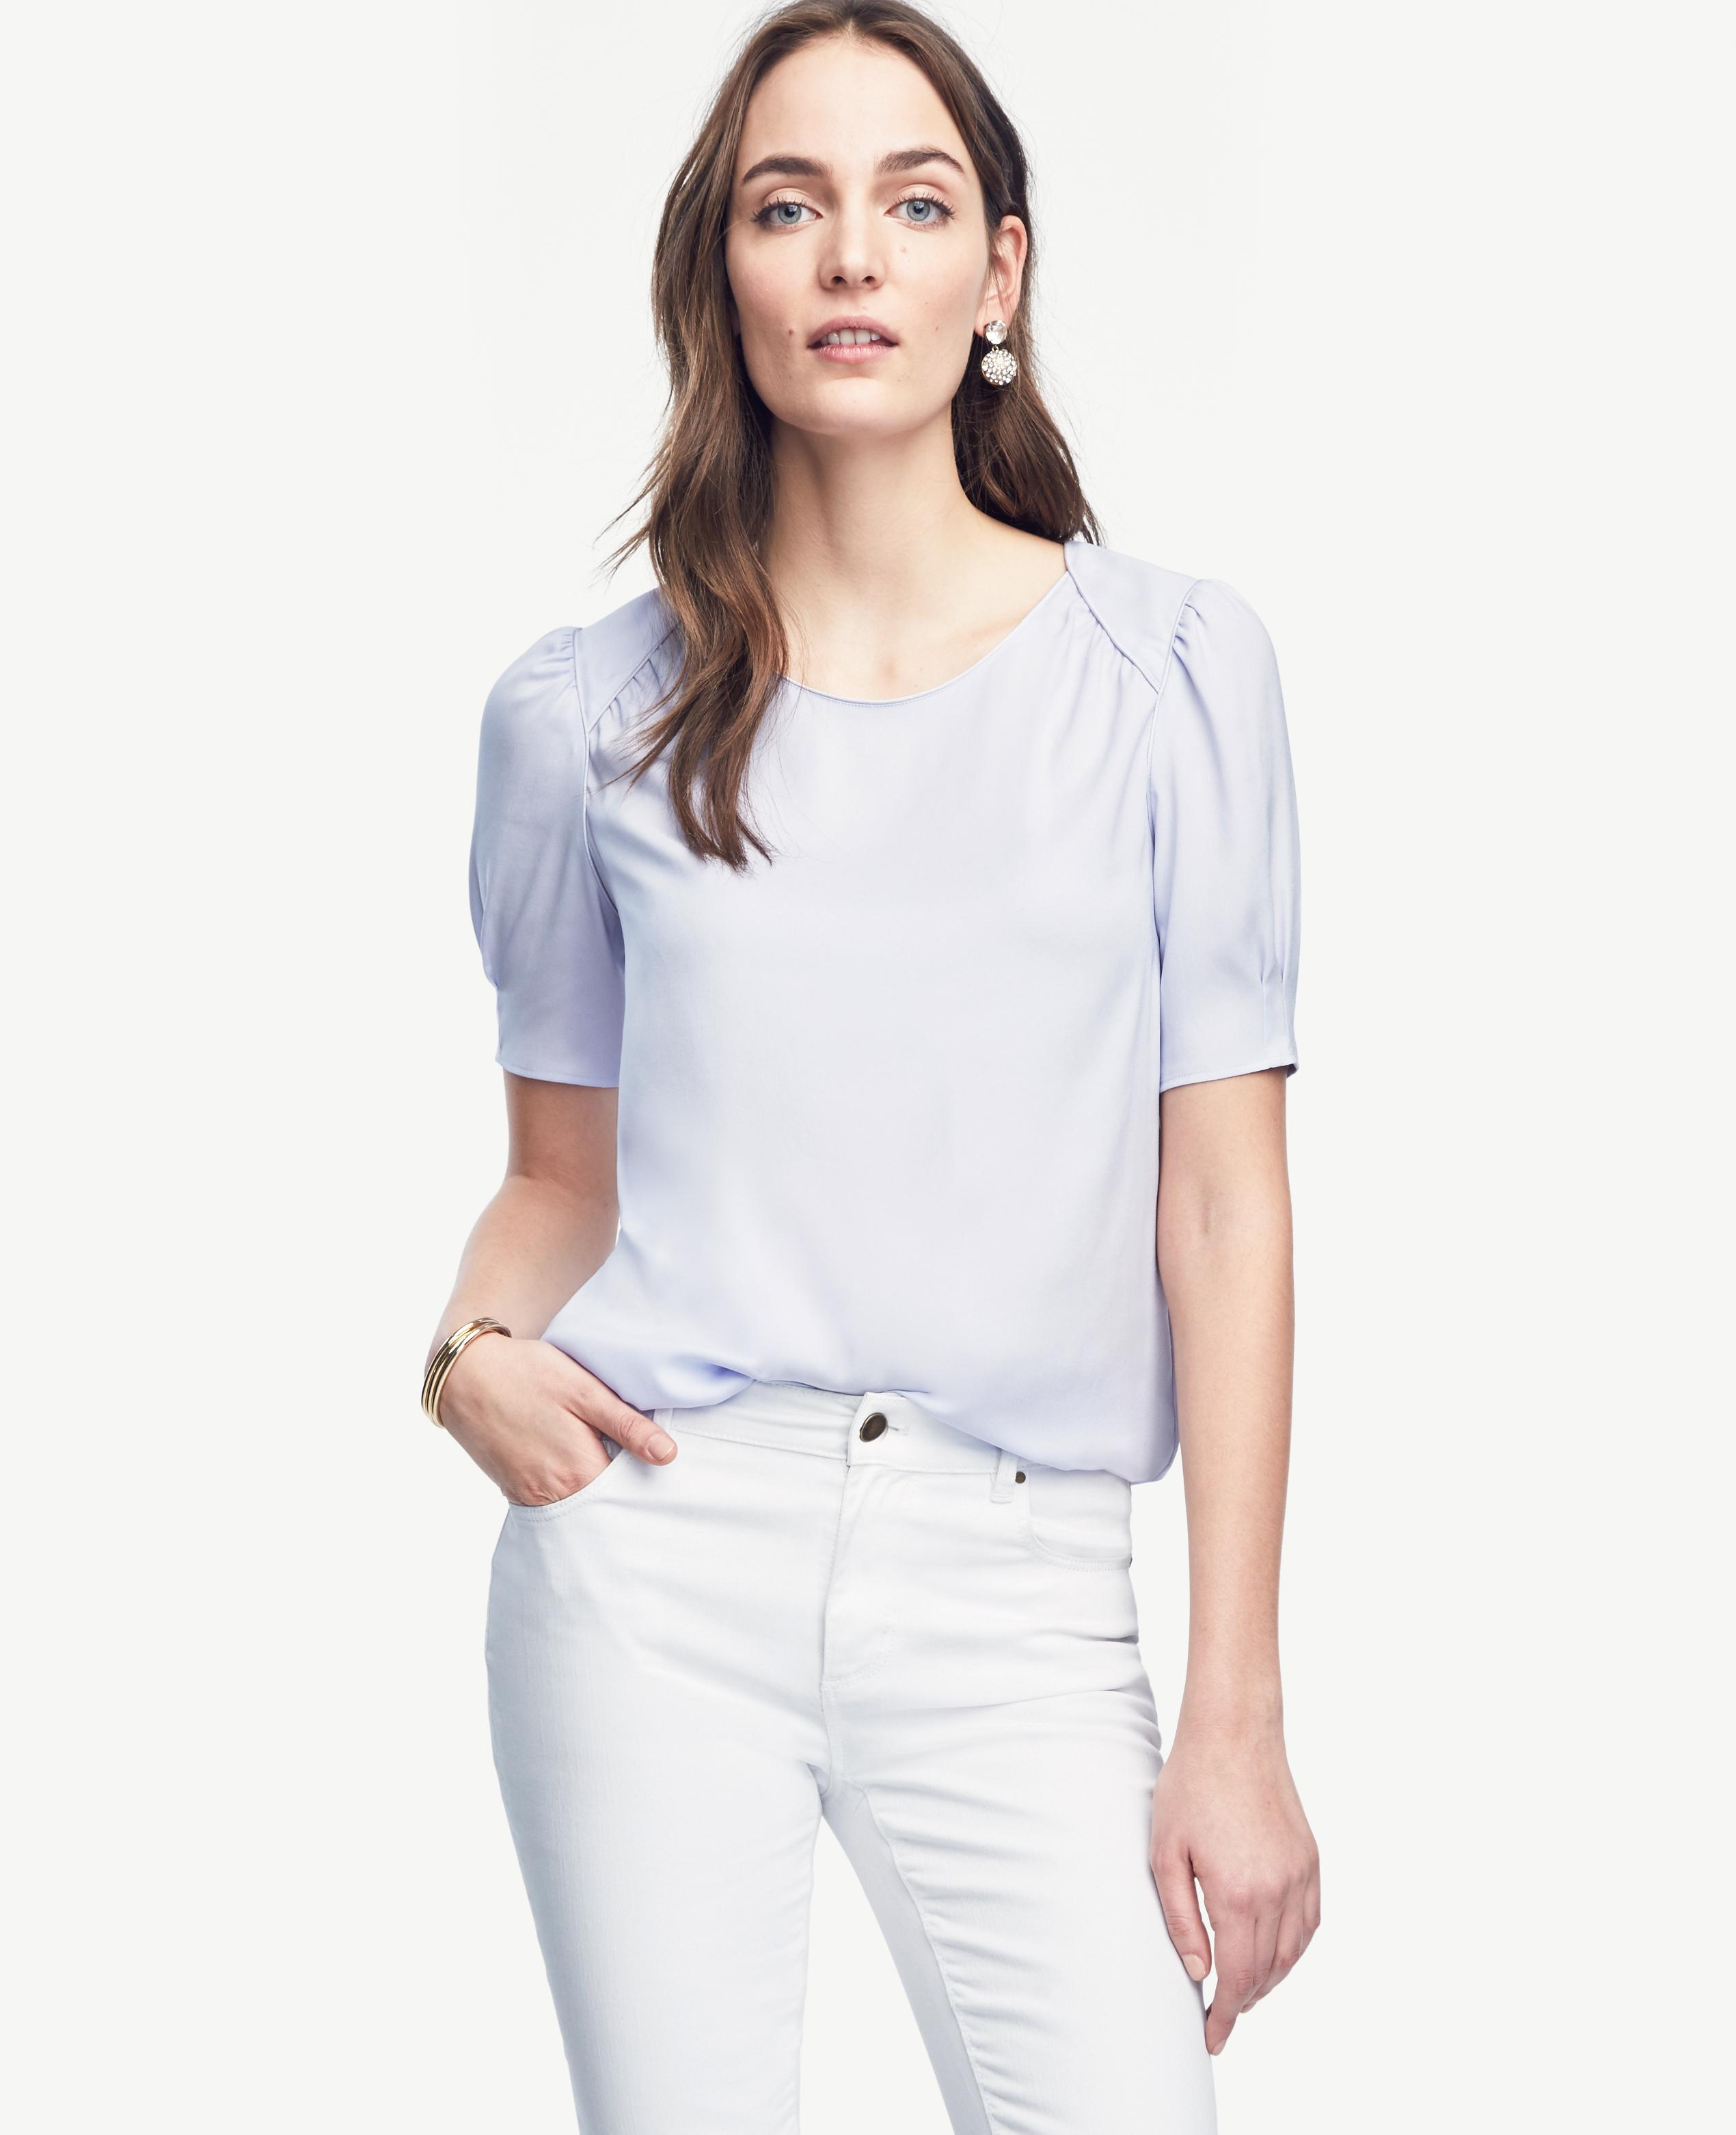 The Top Story - %color %size Blouses for Women. The secret to always looking put-together? Our hot-off-the runway %color %size blouses. With figure-flattering silhouettes and on-trend styles, they're all it takes to elevate your look.